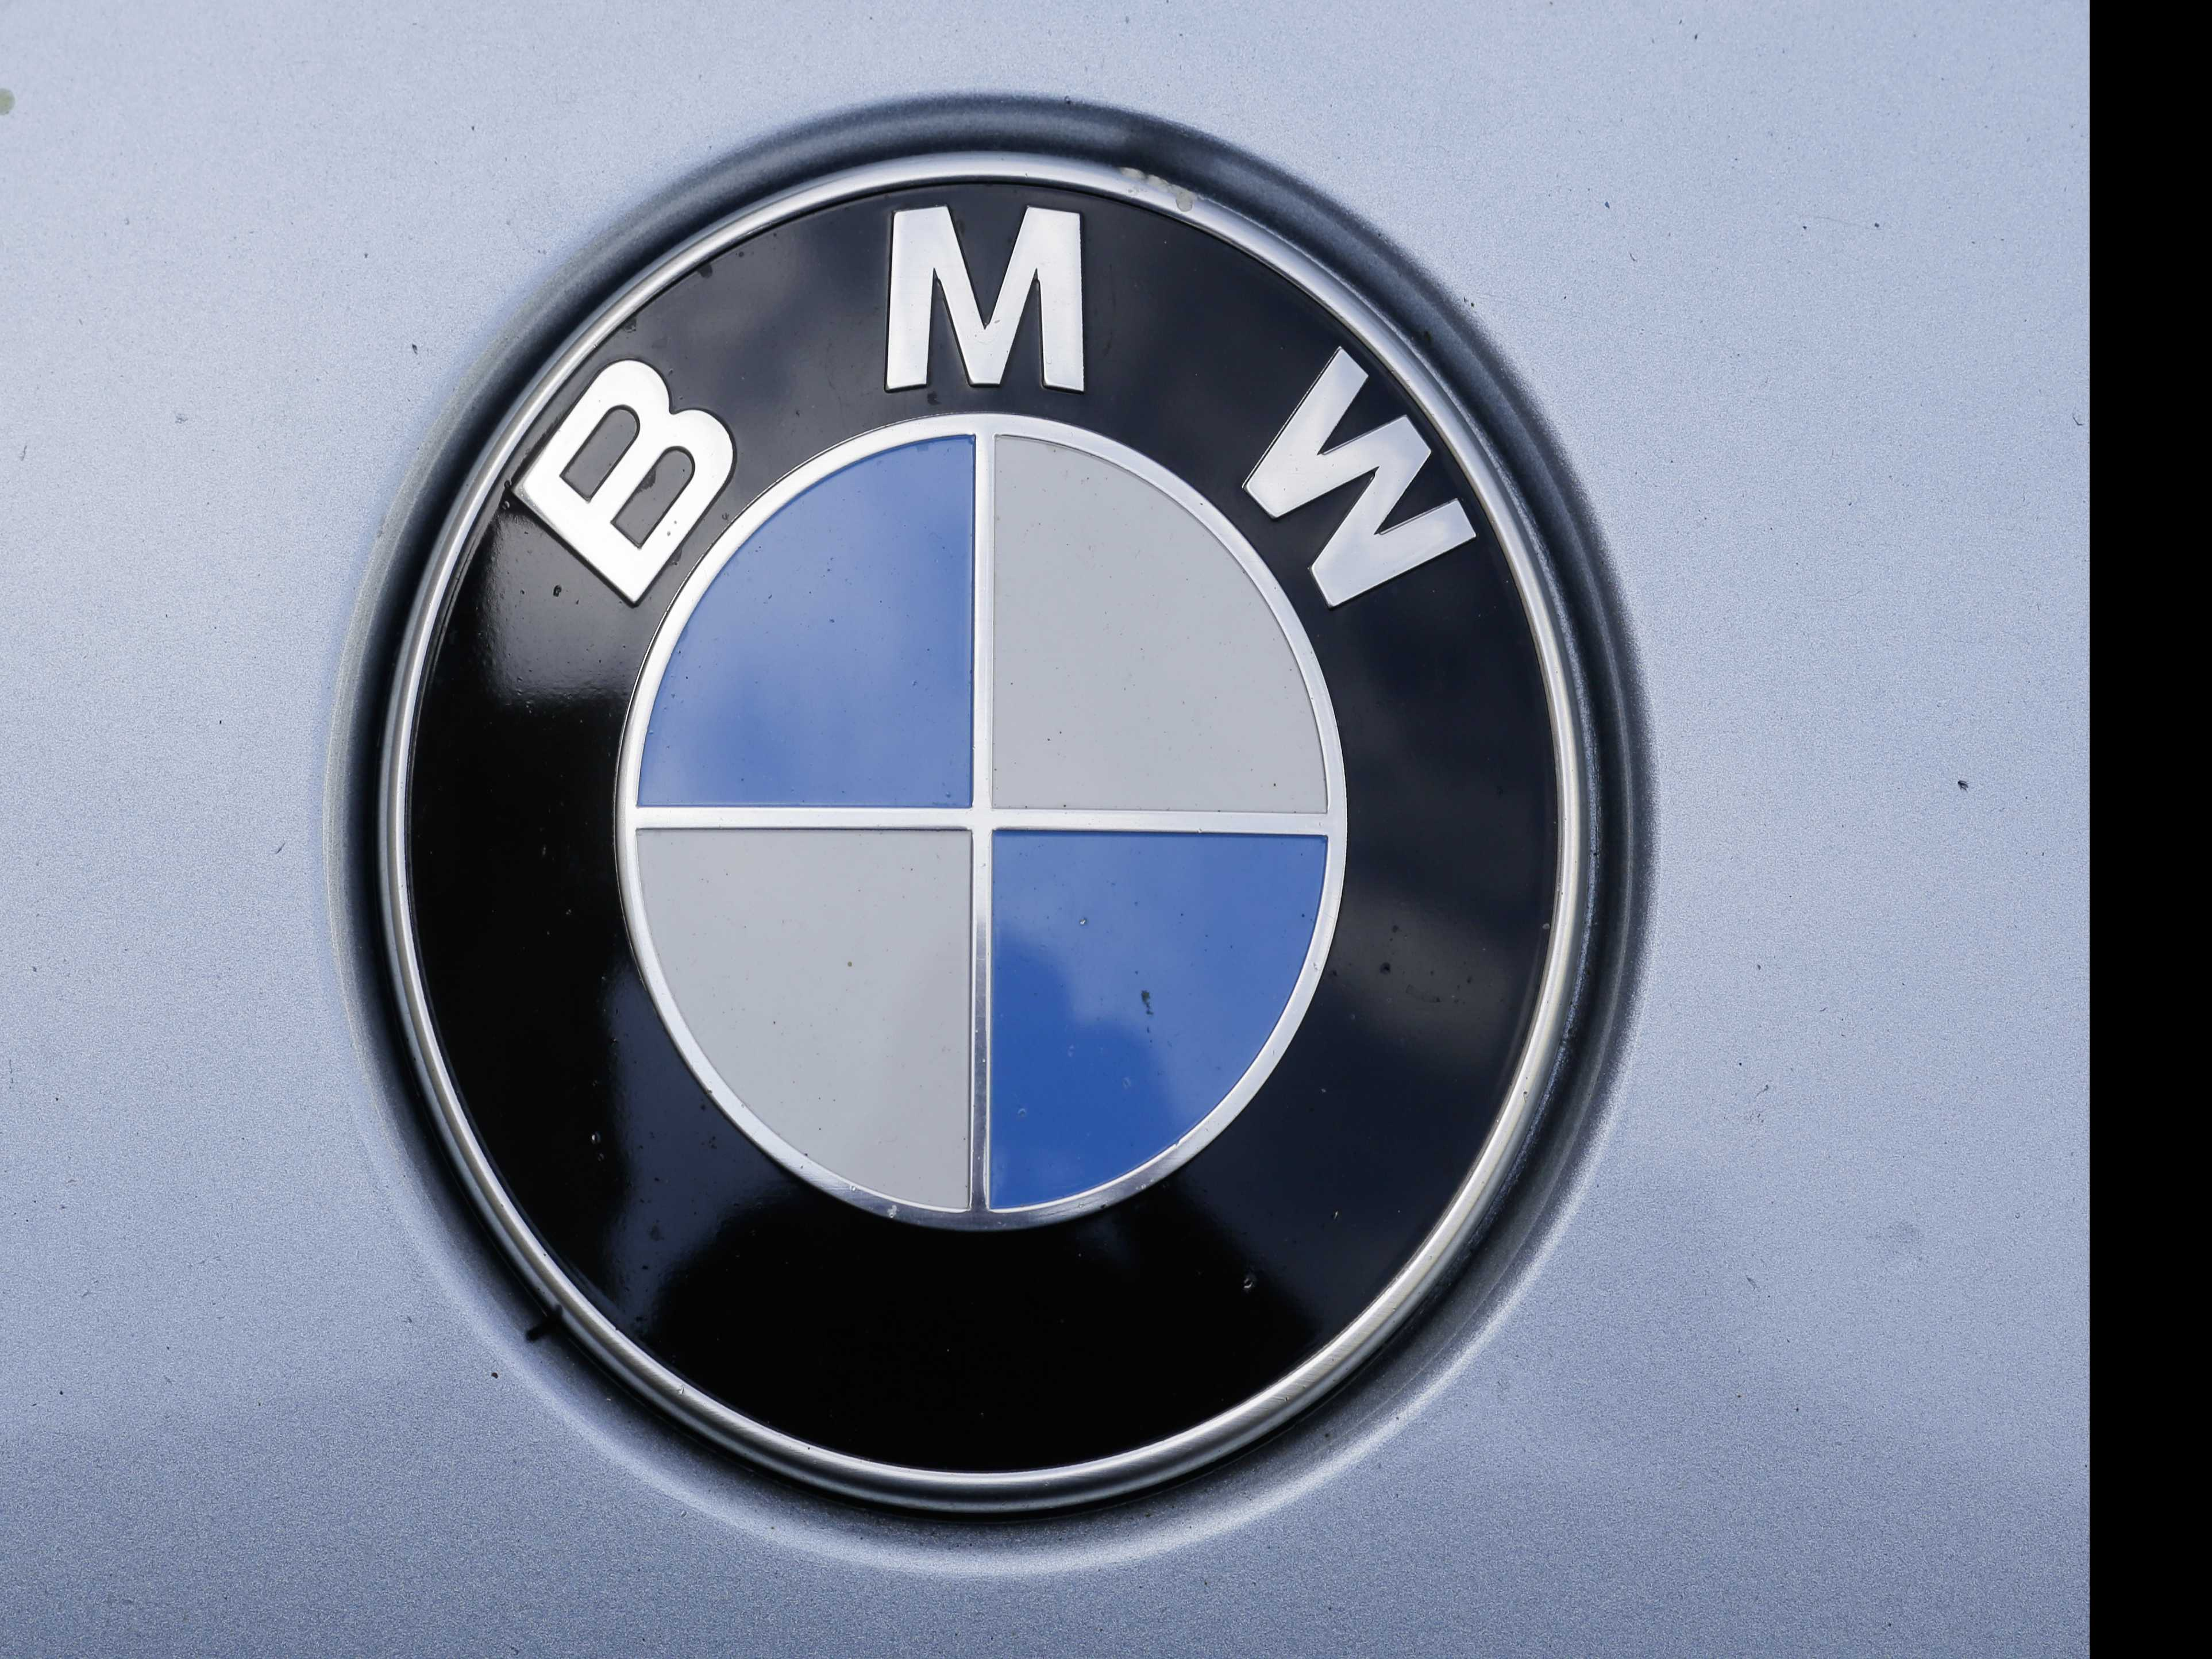 BMW Profit Rises More than Expected on New 5-Series Sedan